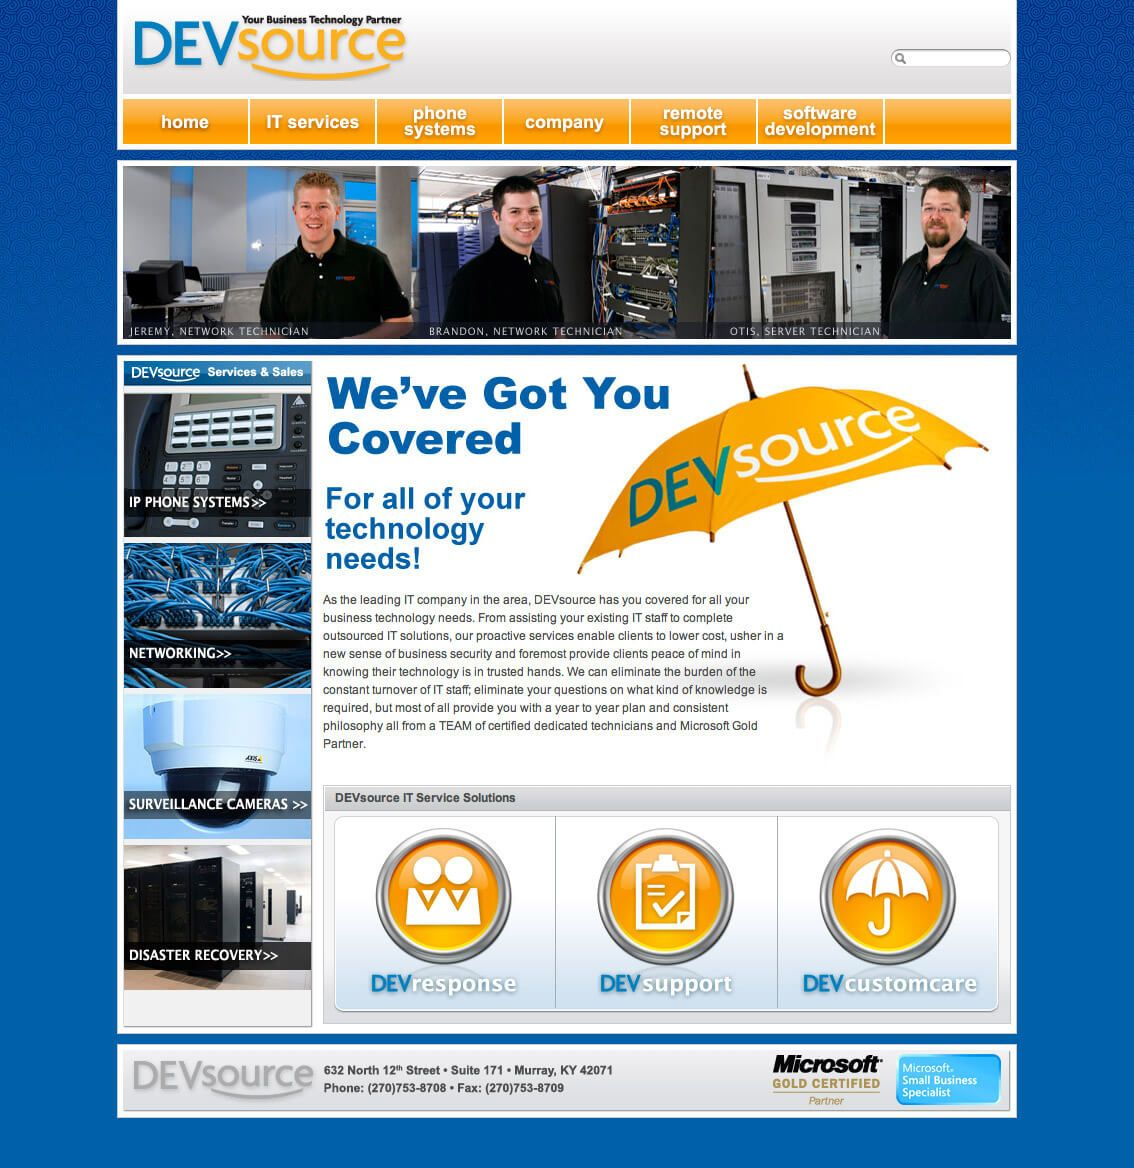 DEVsource Technologies website by EyeSite Creations